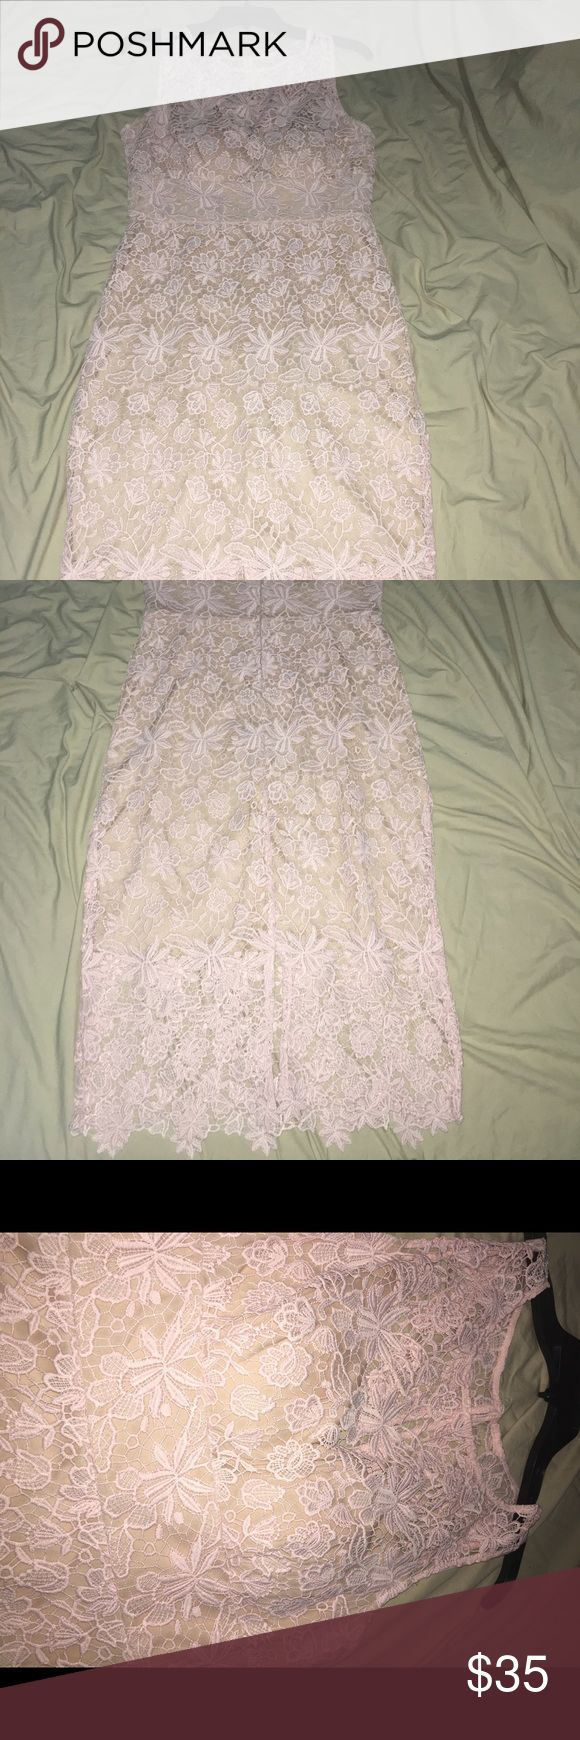 Blush lace dress This is such a beautiful dress that is form fitting and has an nude underlining on with beautiful lace that makes the dress! Bisou Bisou Dresses Midi